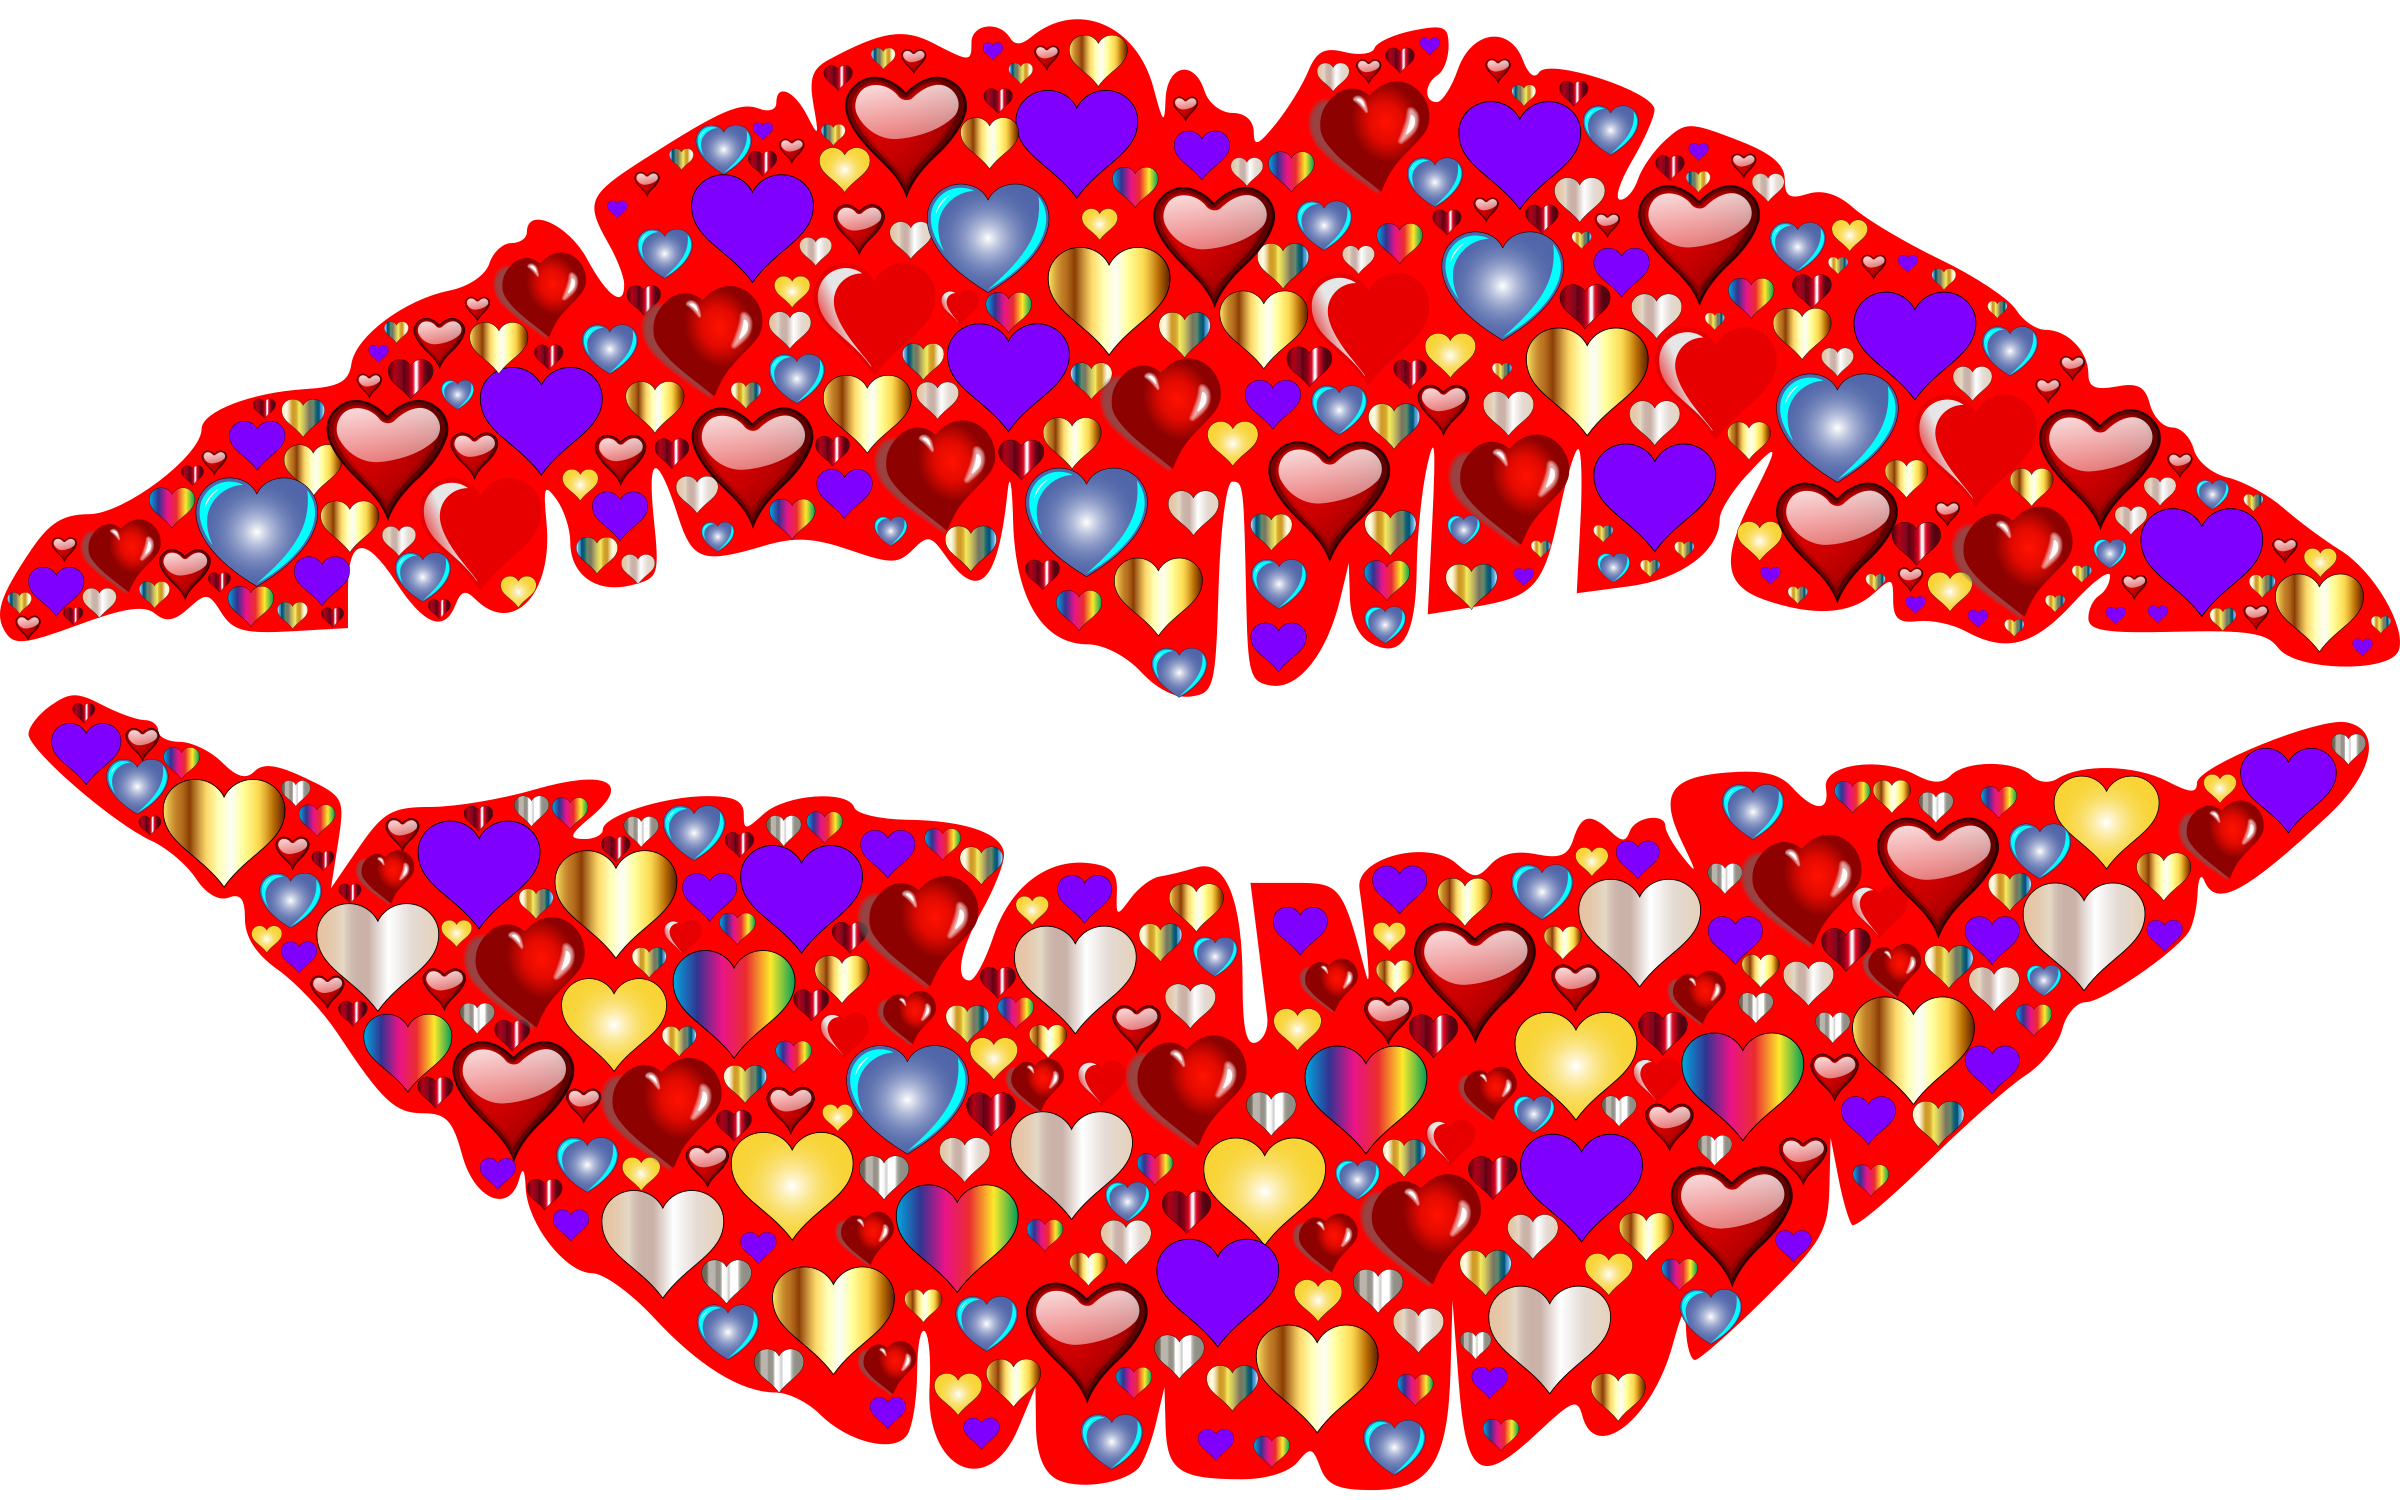 Heart Lips by GDJ